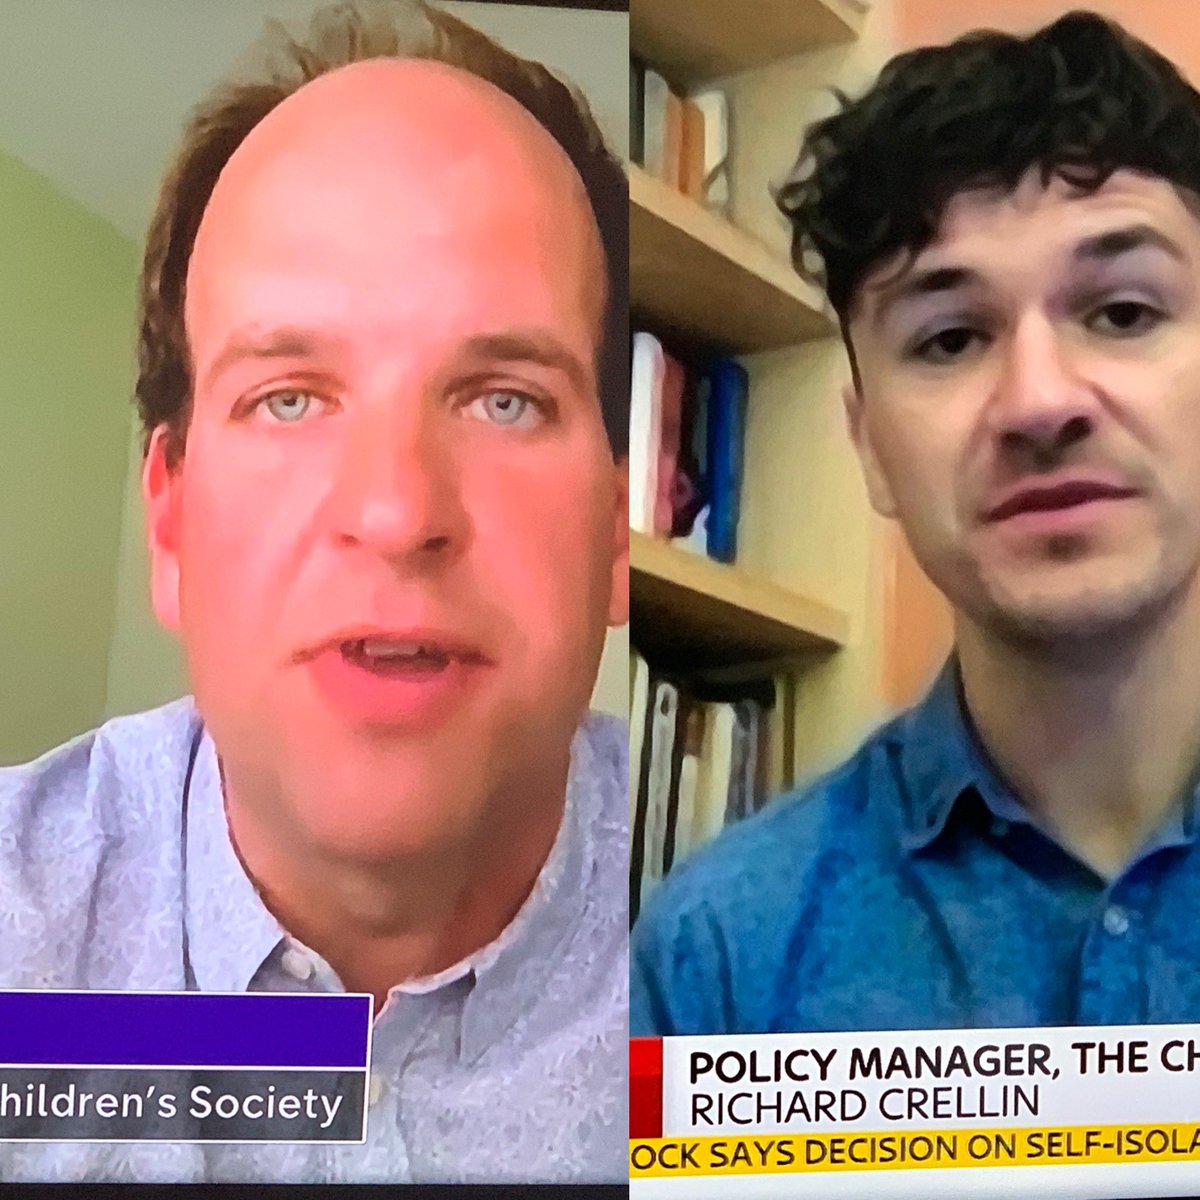 Really proud of our team today - @RichardCrellin on @SkyNews talking about the impact of Covid on children's well-being and @sam_royston on @Channel4News talking about people with no recourse to public funds #proudCEO https://t.co/KhXsw4TRgP